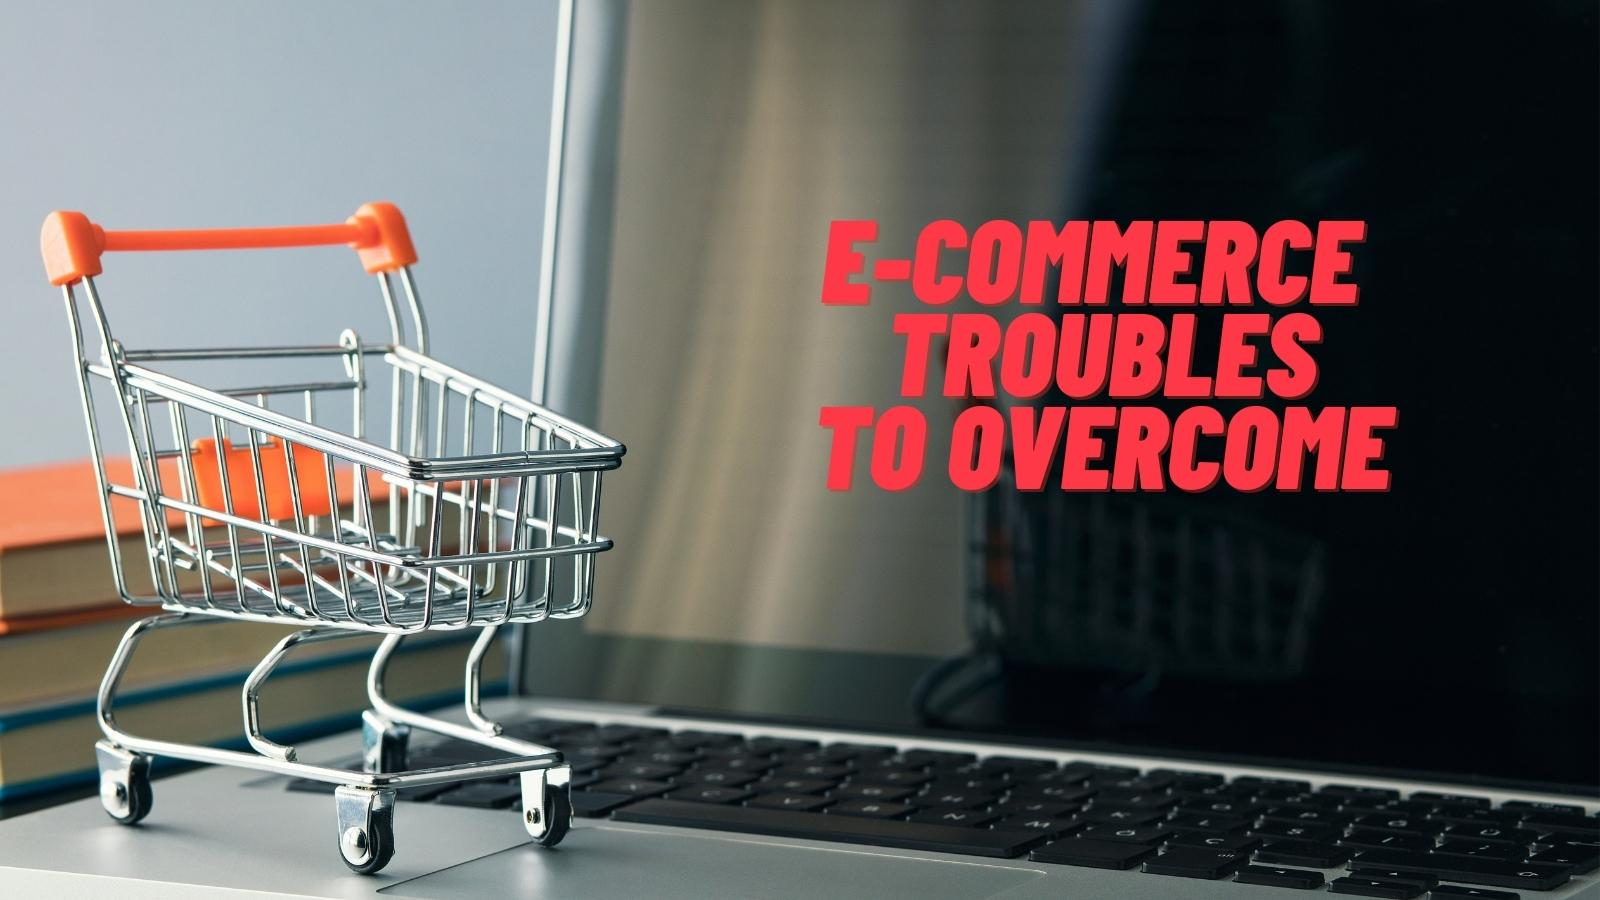 troubles of an e-commerce company